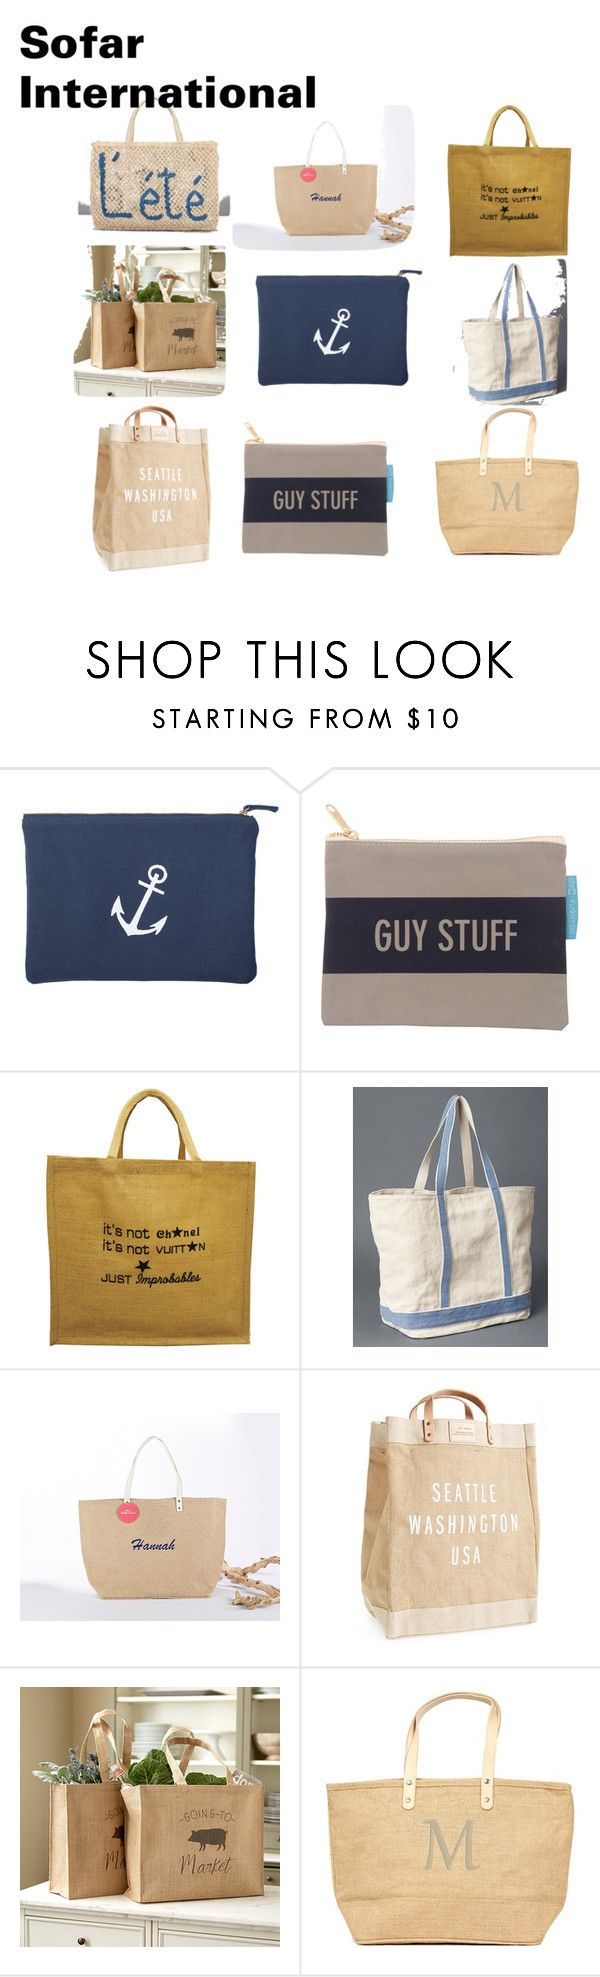 """Jute Bag/ Jute Shopping Bag/ Jute Promotional Bags"" by asifnazir on Polyvore featuring Izola, Gap, Ballard Designs, Cathy's Concepts and Été Swim"